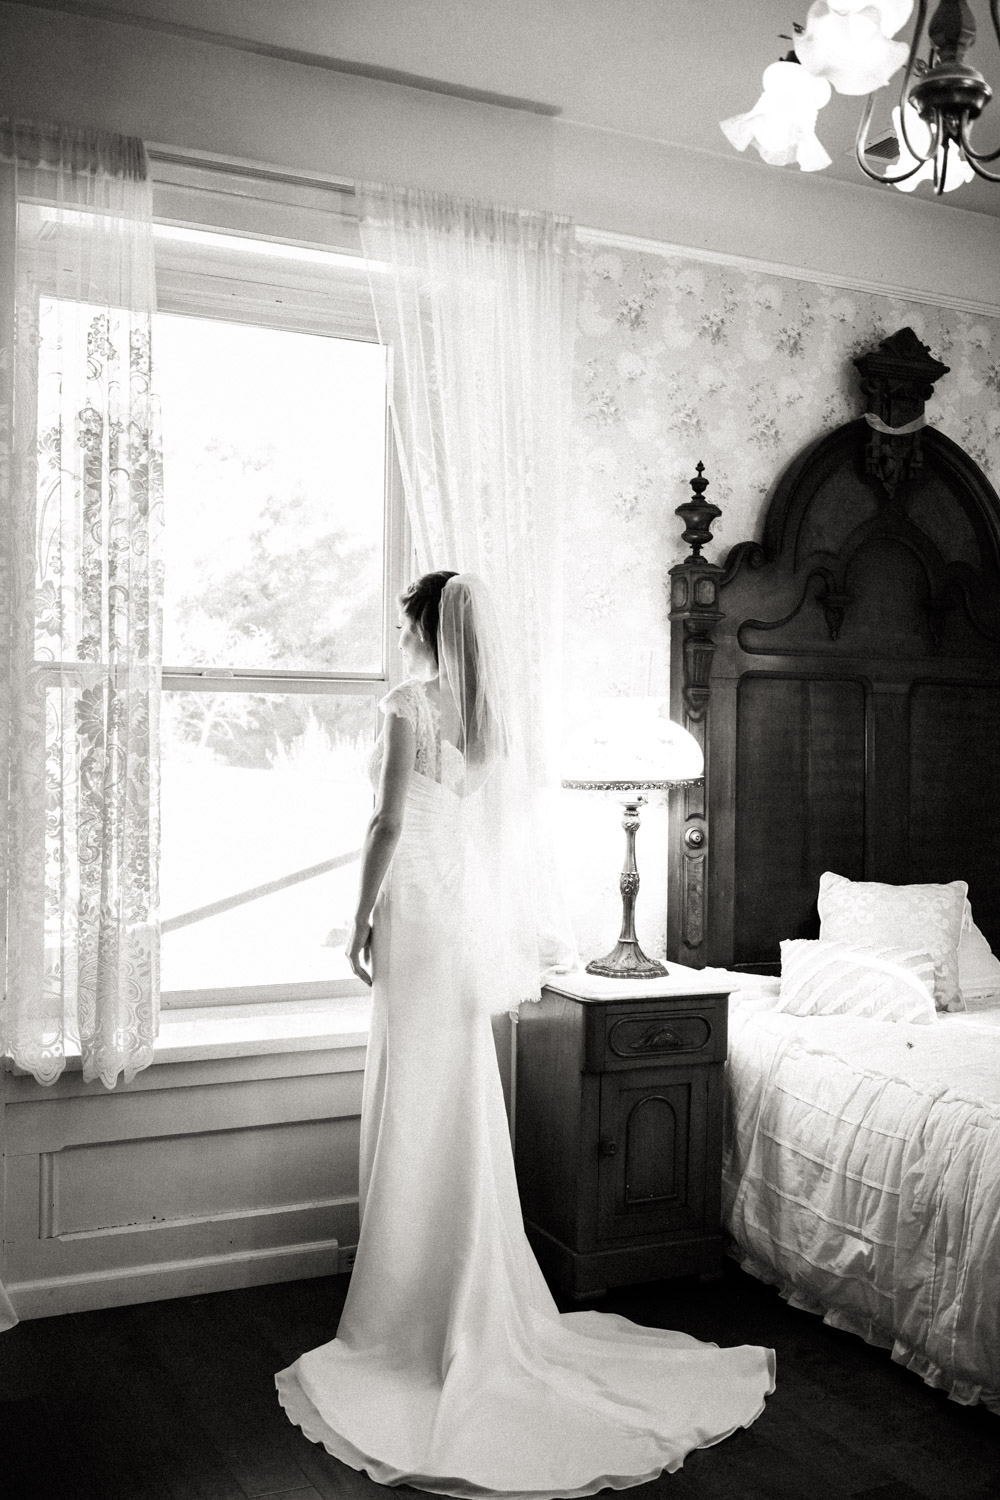 Photo of the bride at the window in black and white is simply timeless and elegant.